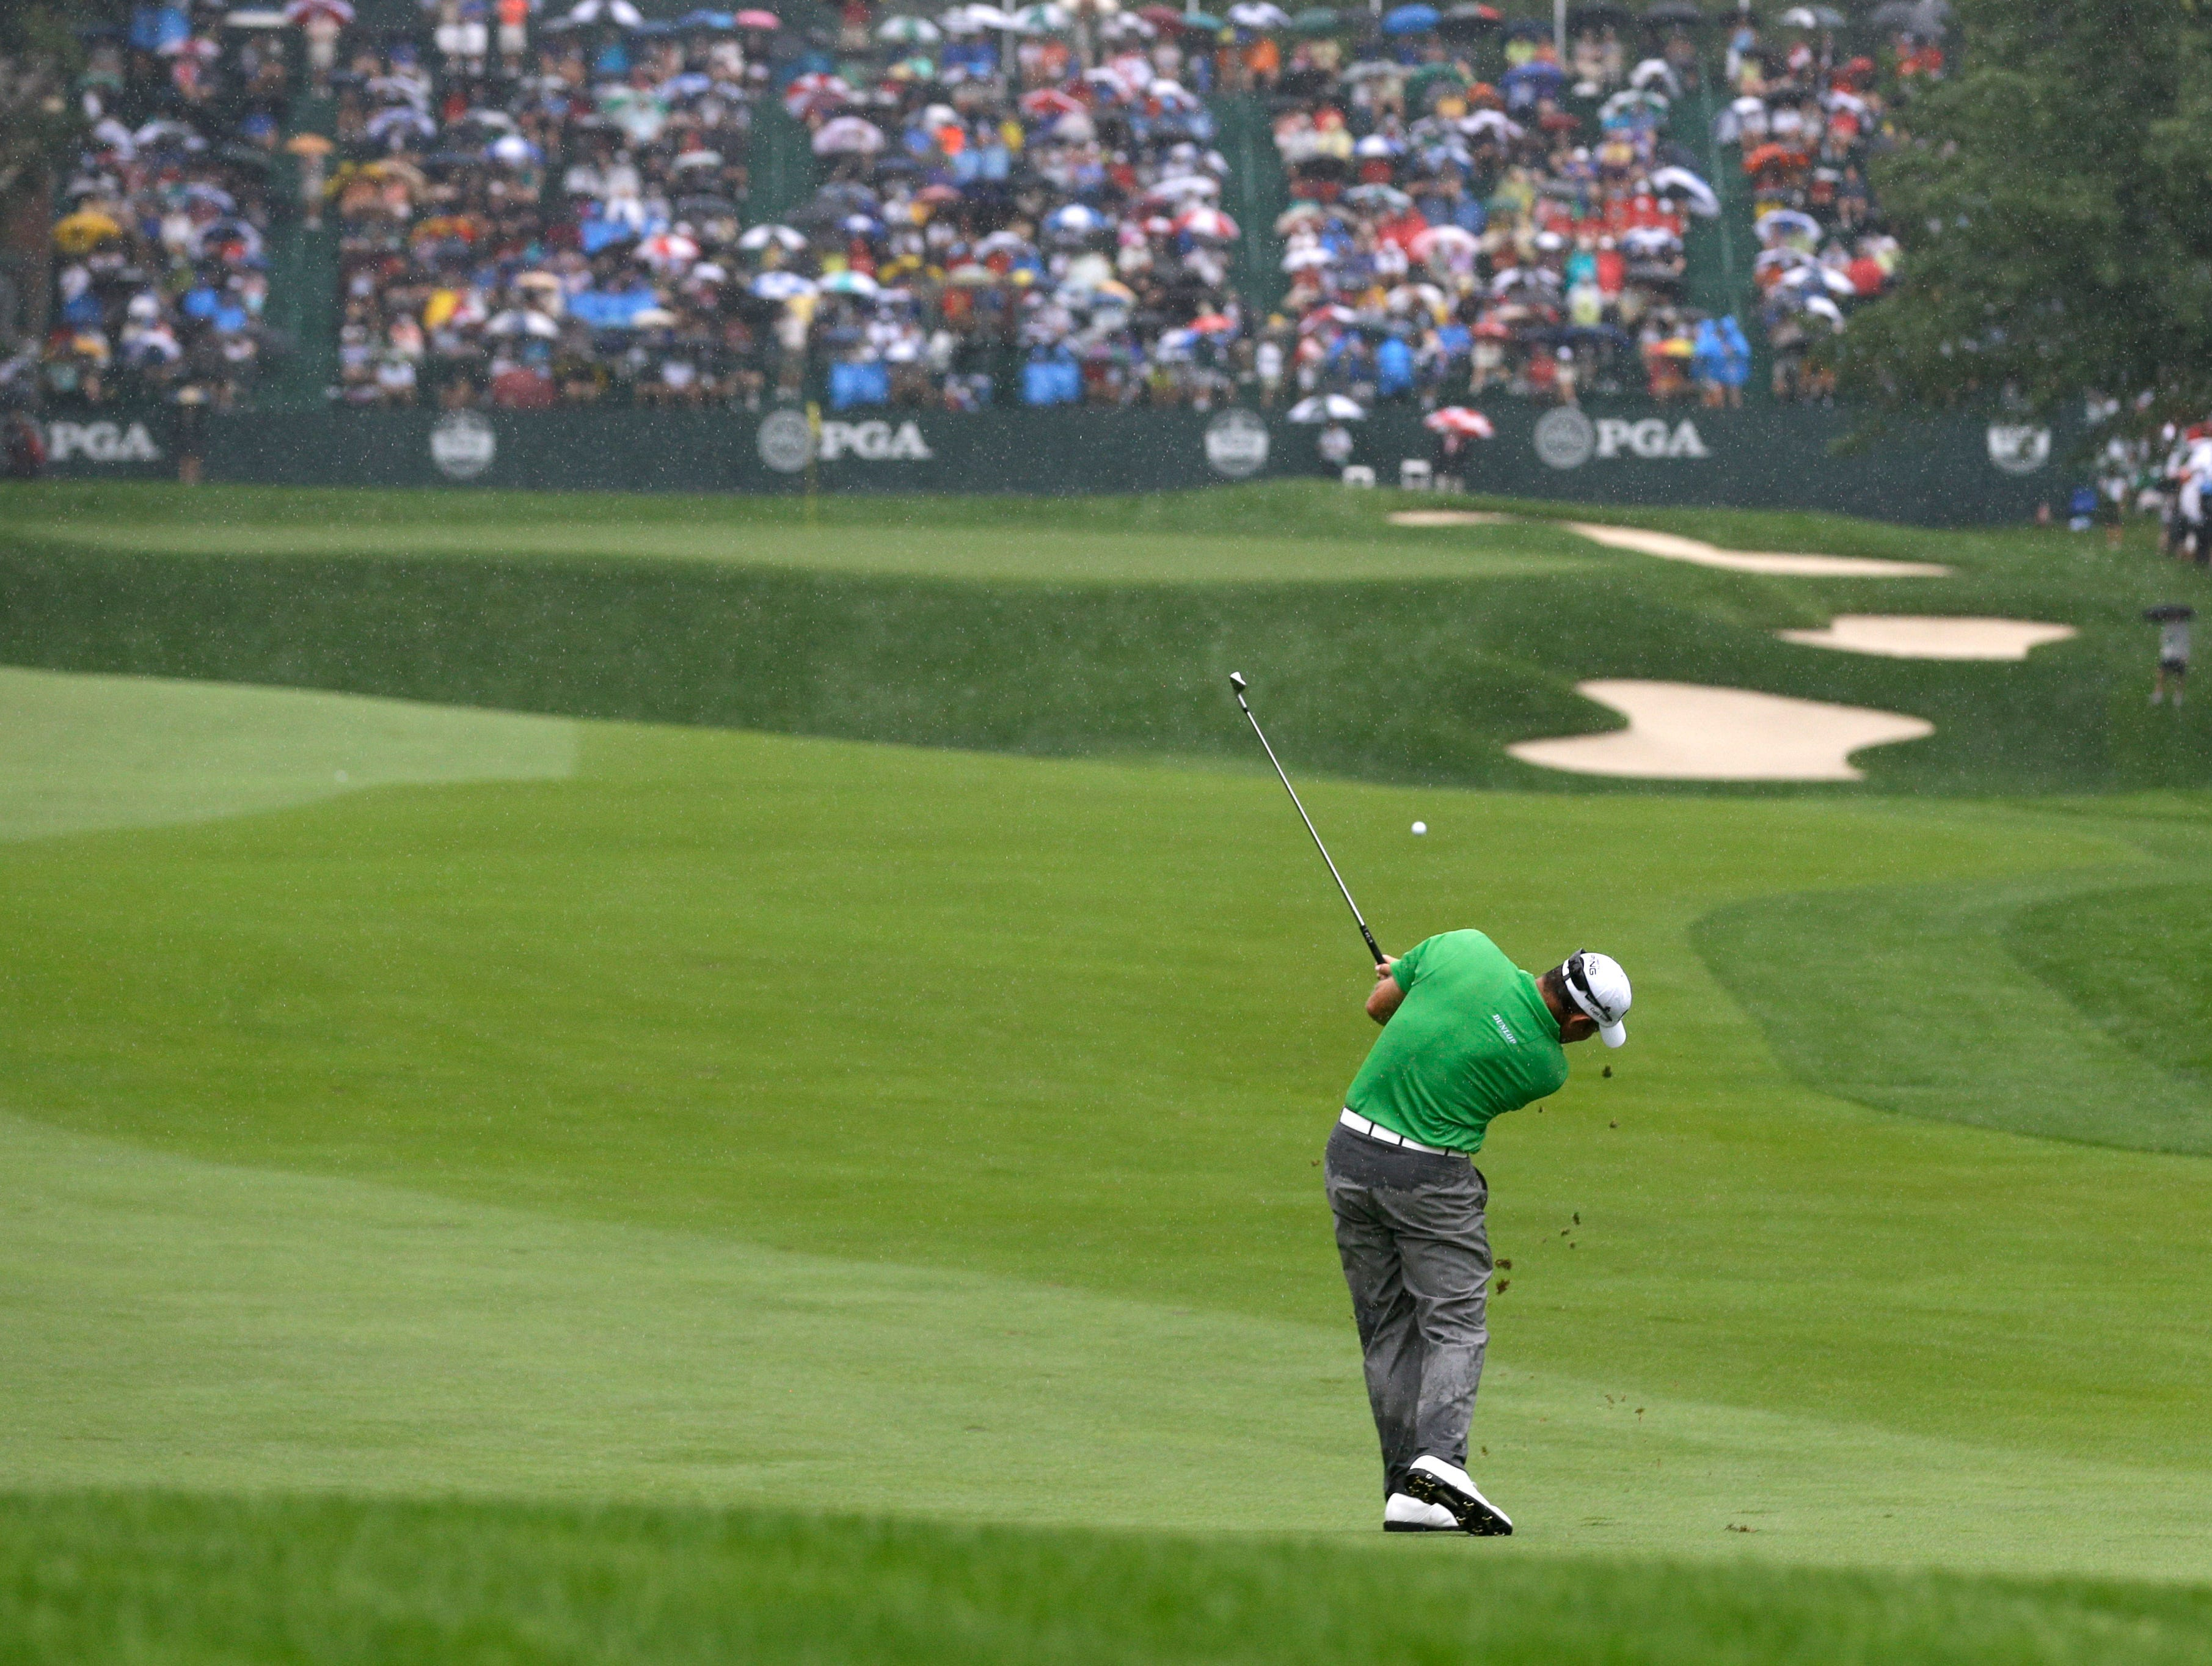 Lee Westwood hits from the fairway on the 18th hole.